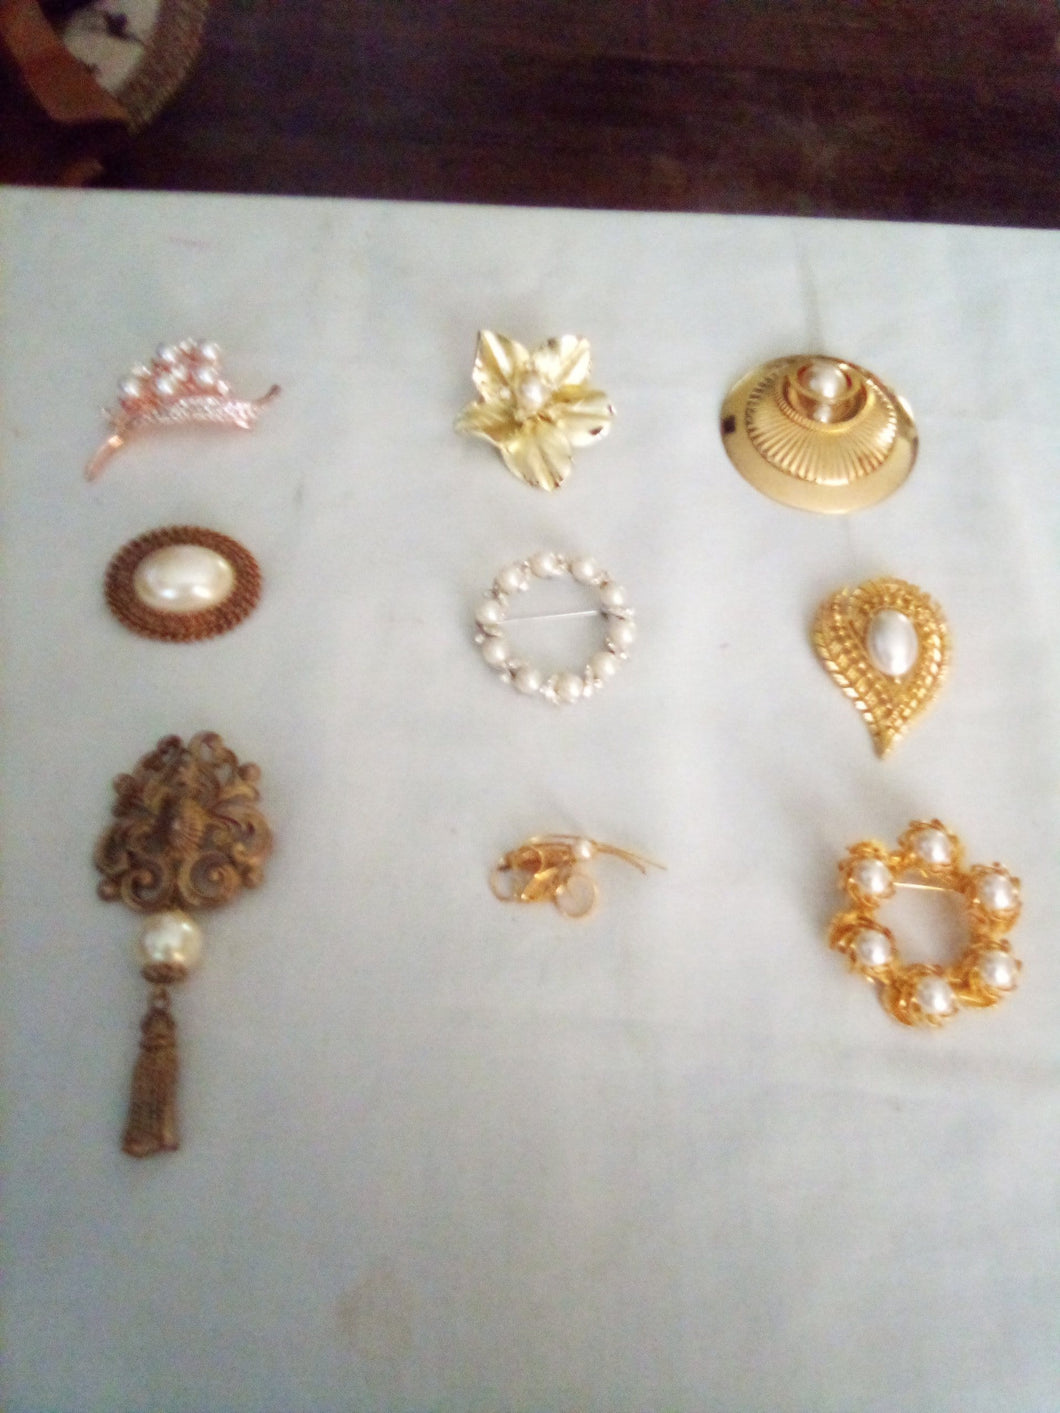 Vintage nice lot of broaches with pearl like decor - B&P'sringsnthings